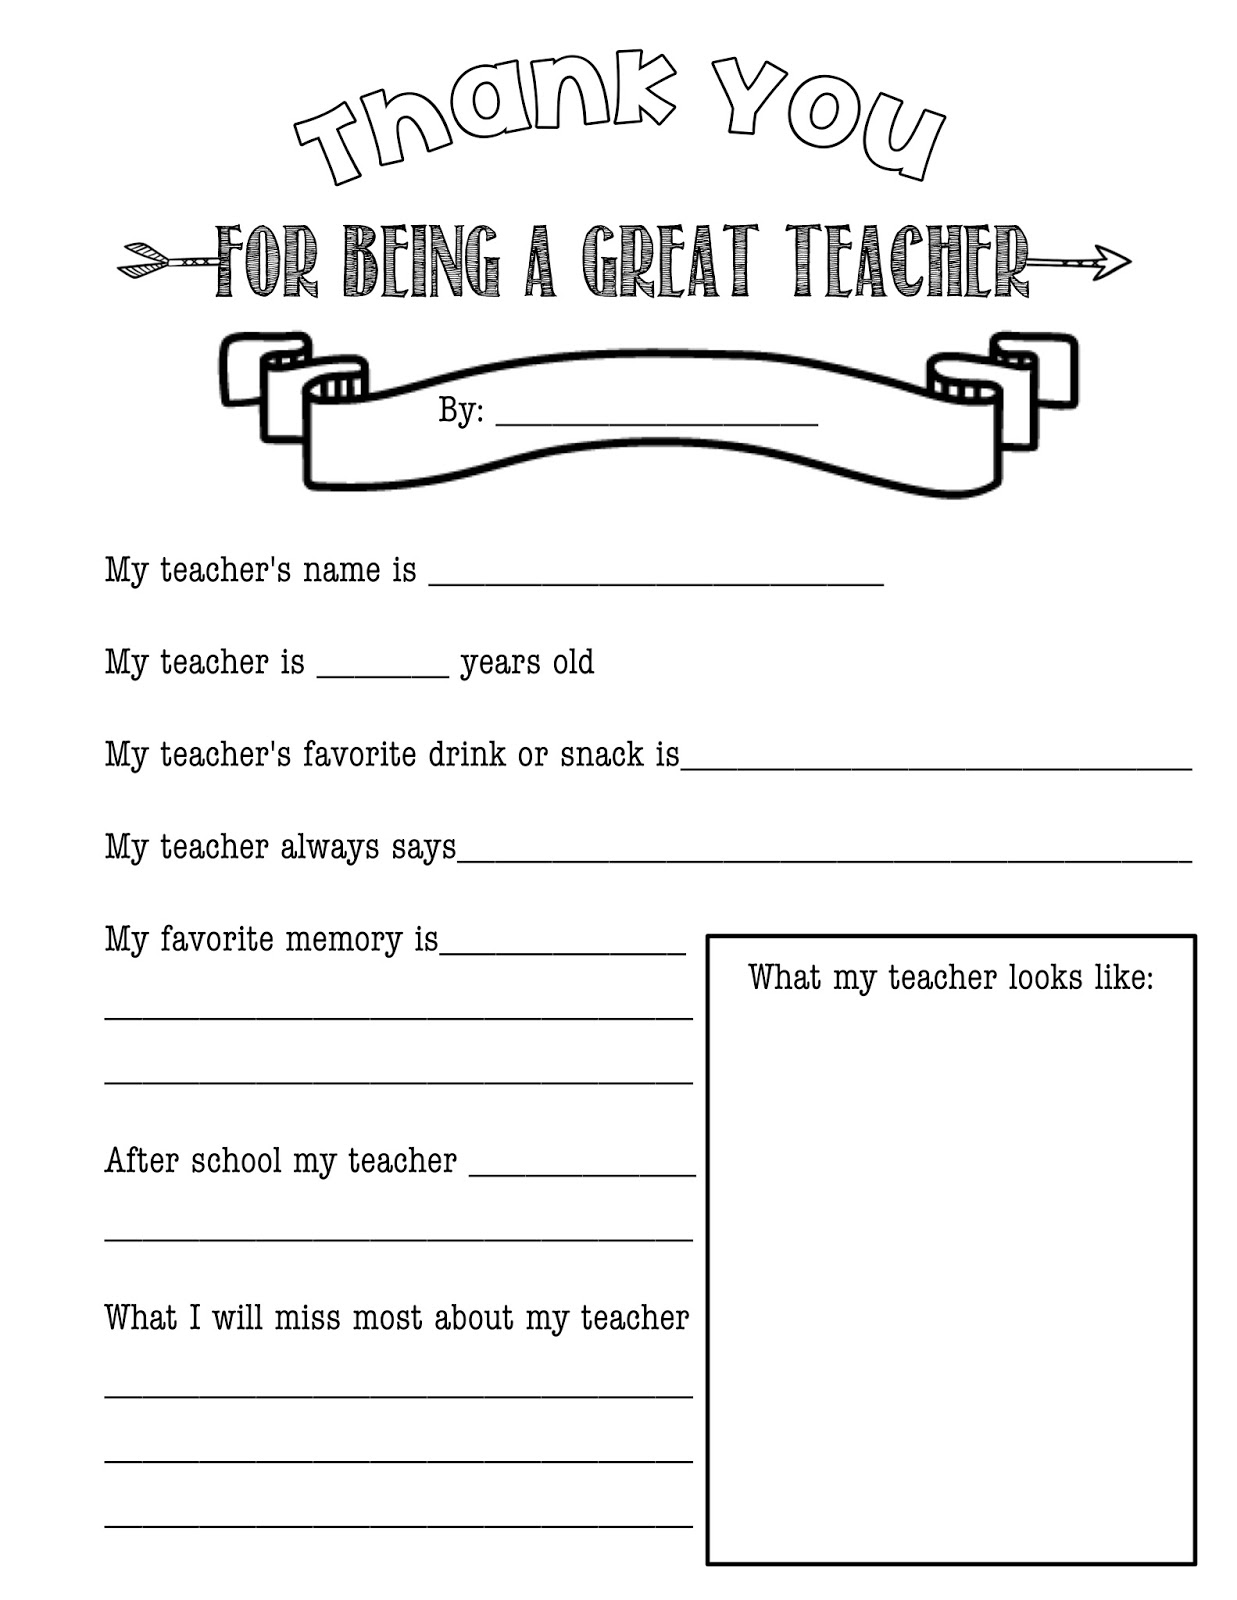 Free Teacher Questionnaire